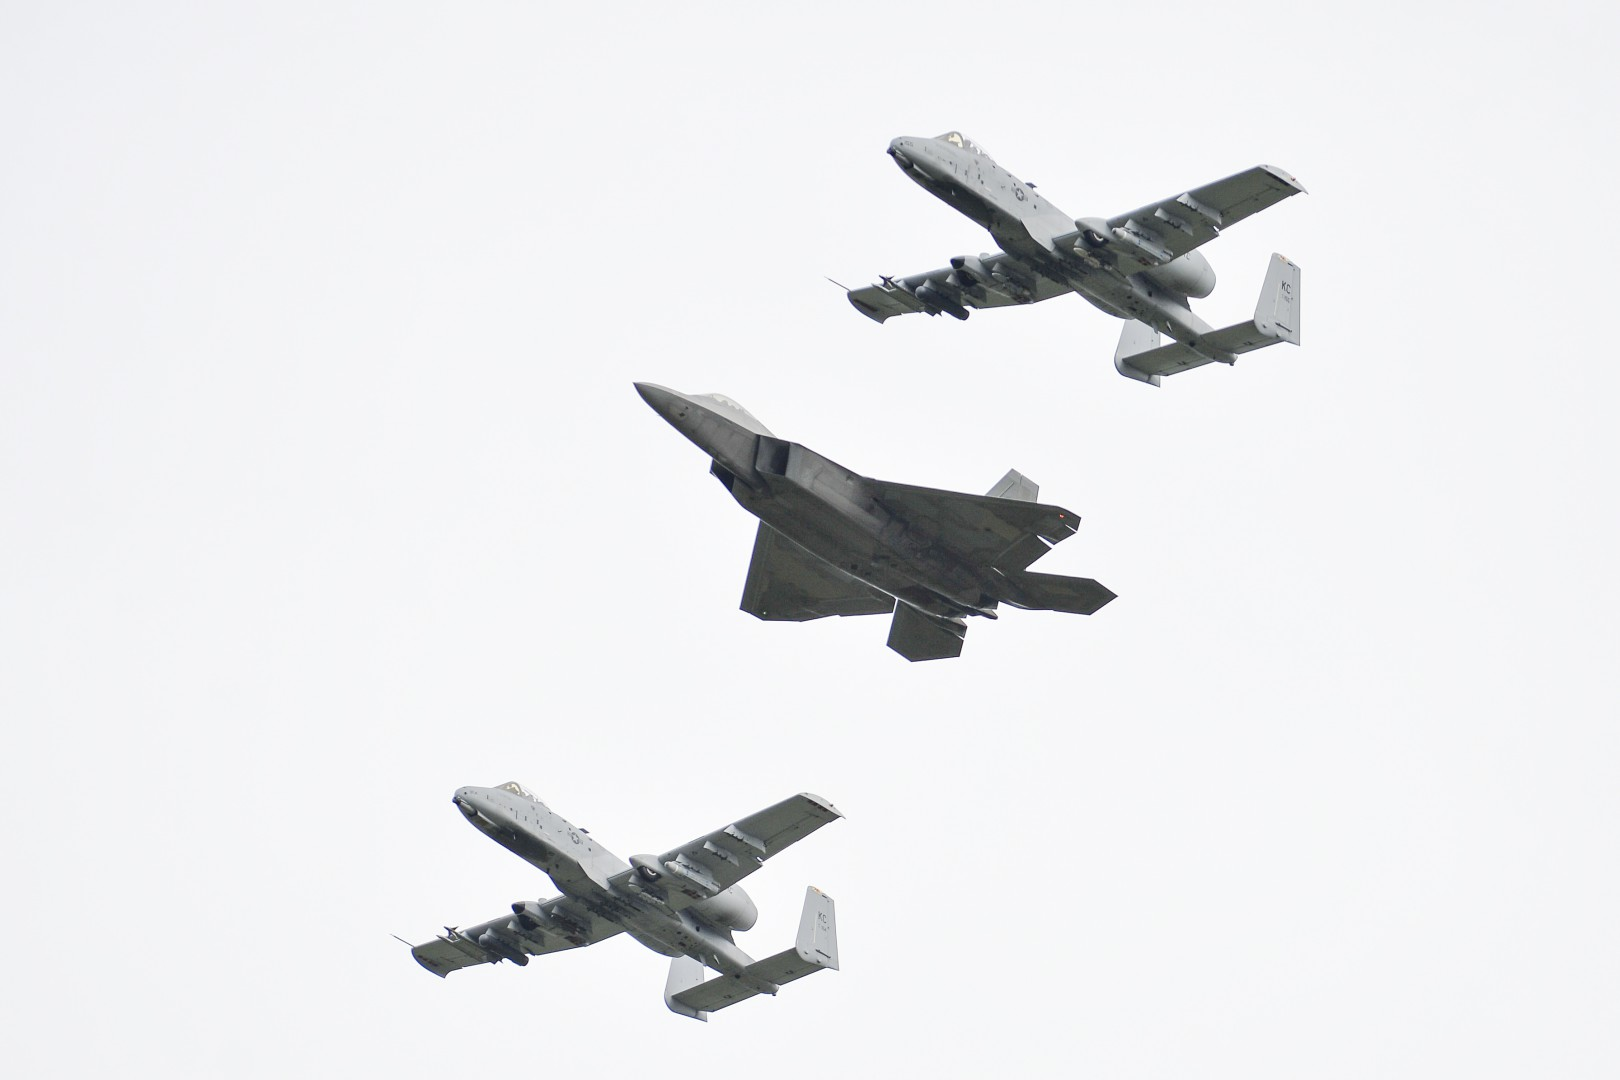 Amari, Estonia - September 4, 2015: Two based in Europe US Airforce F-22 aircrafts visited Estonian airbase in Amari on  September 4, 2015. (Xinhua/Sergei Stepanov)